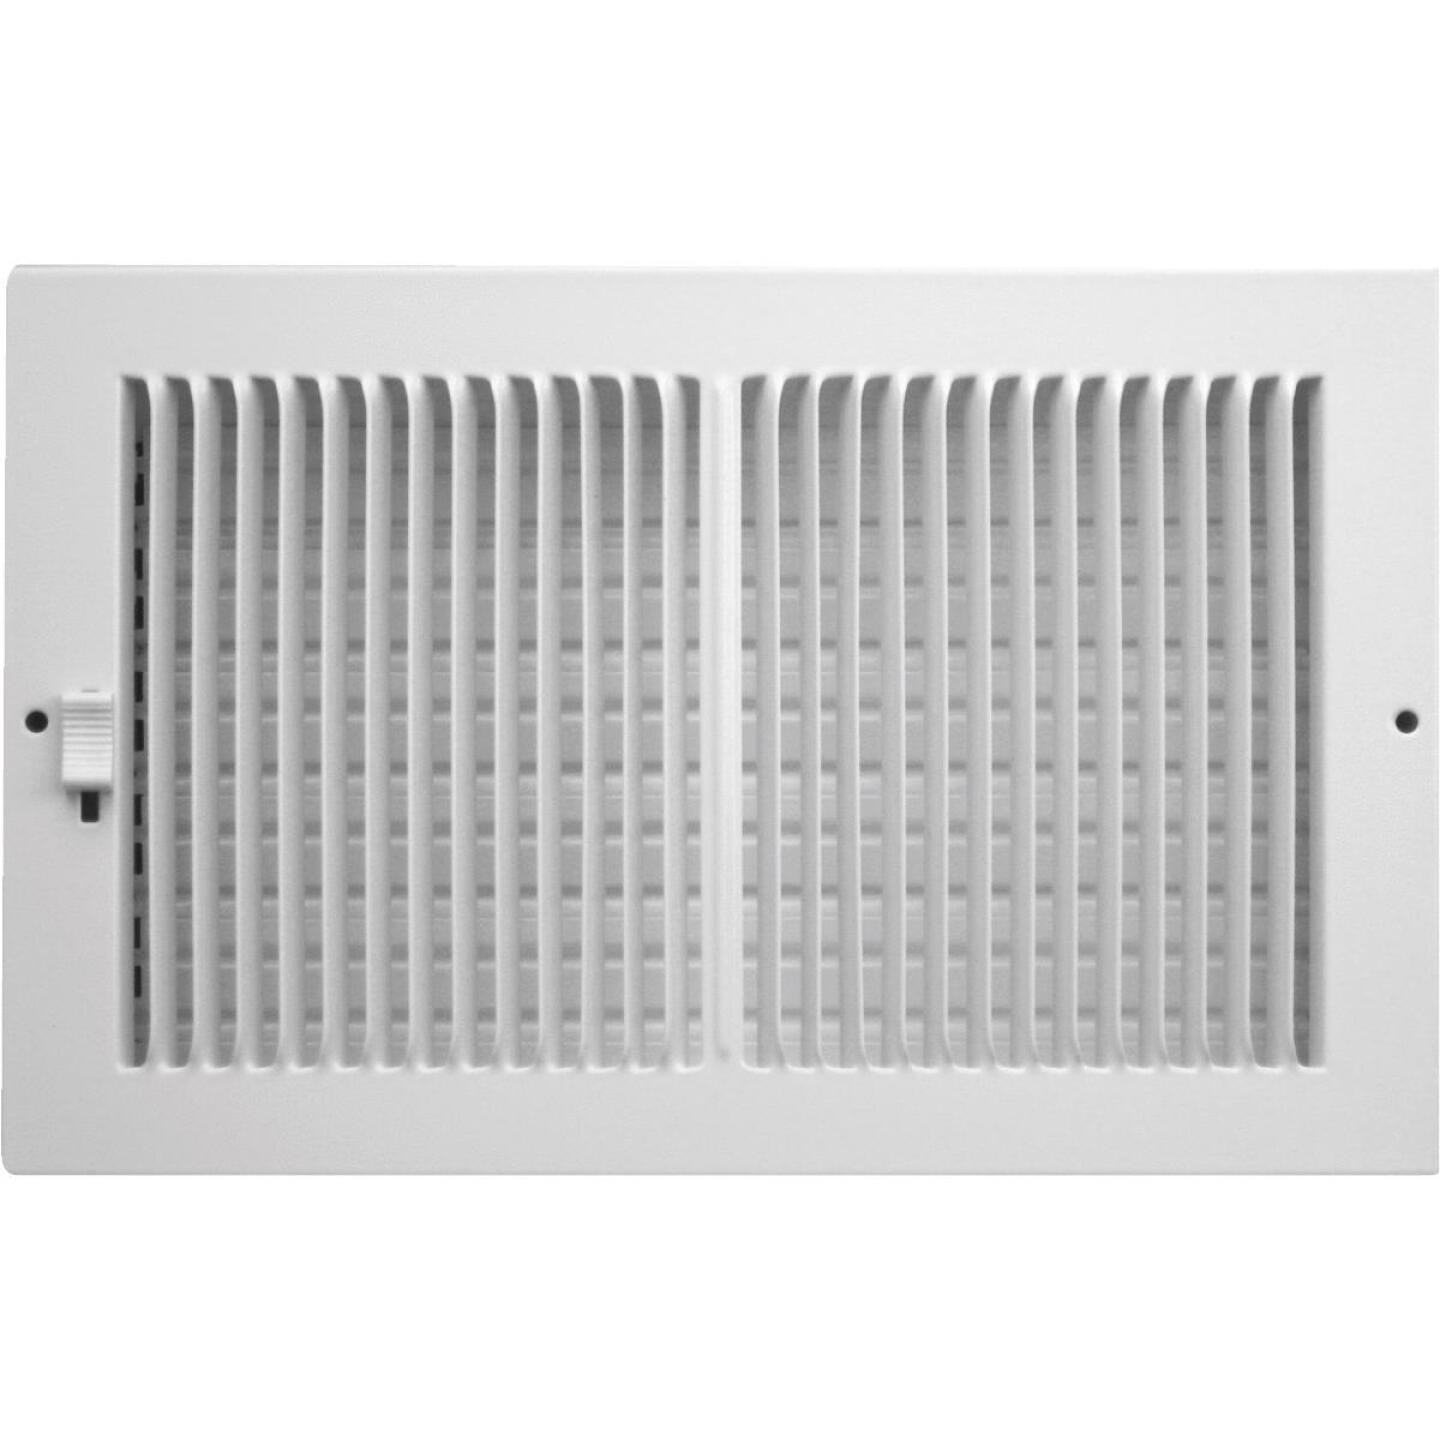 Accord 10 In. x 6 In. White Wall Register Image 1